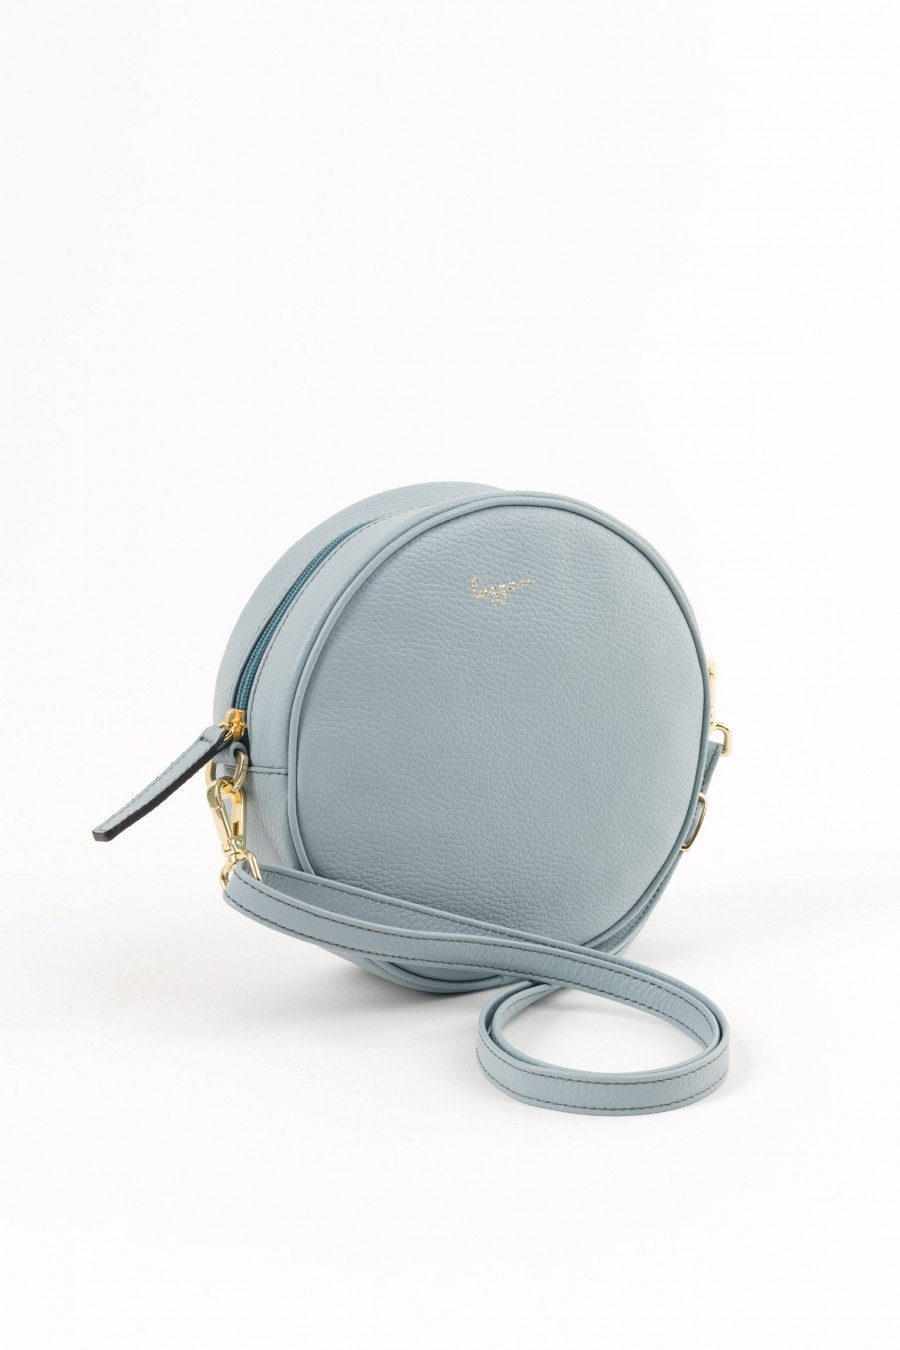 Light blue elegant bag